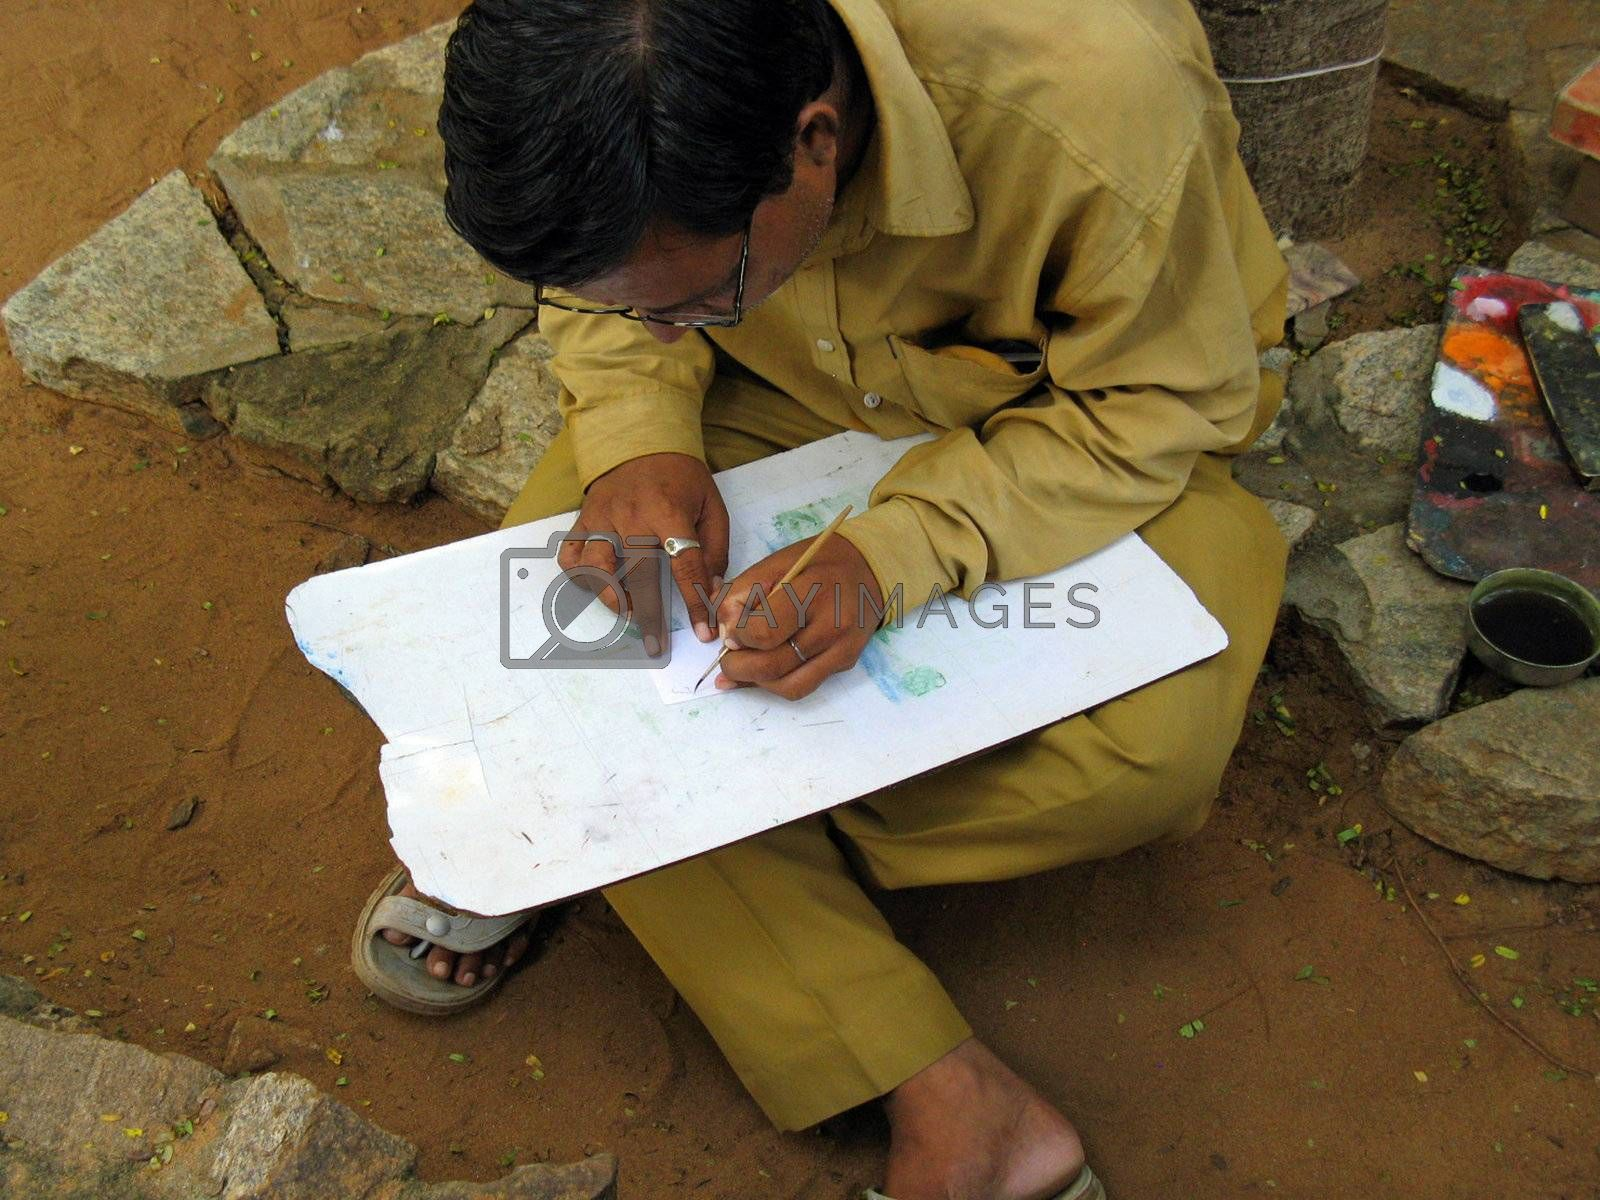 An artist in India creates painted artwork.